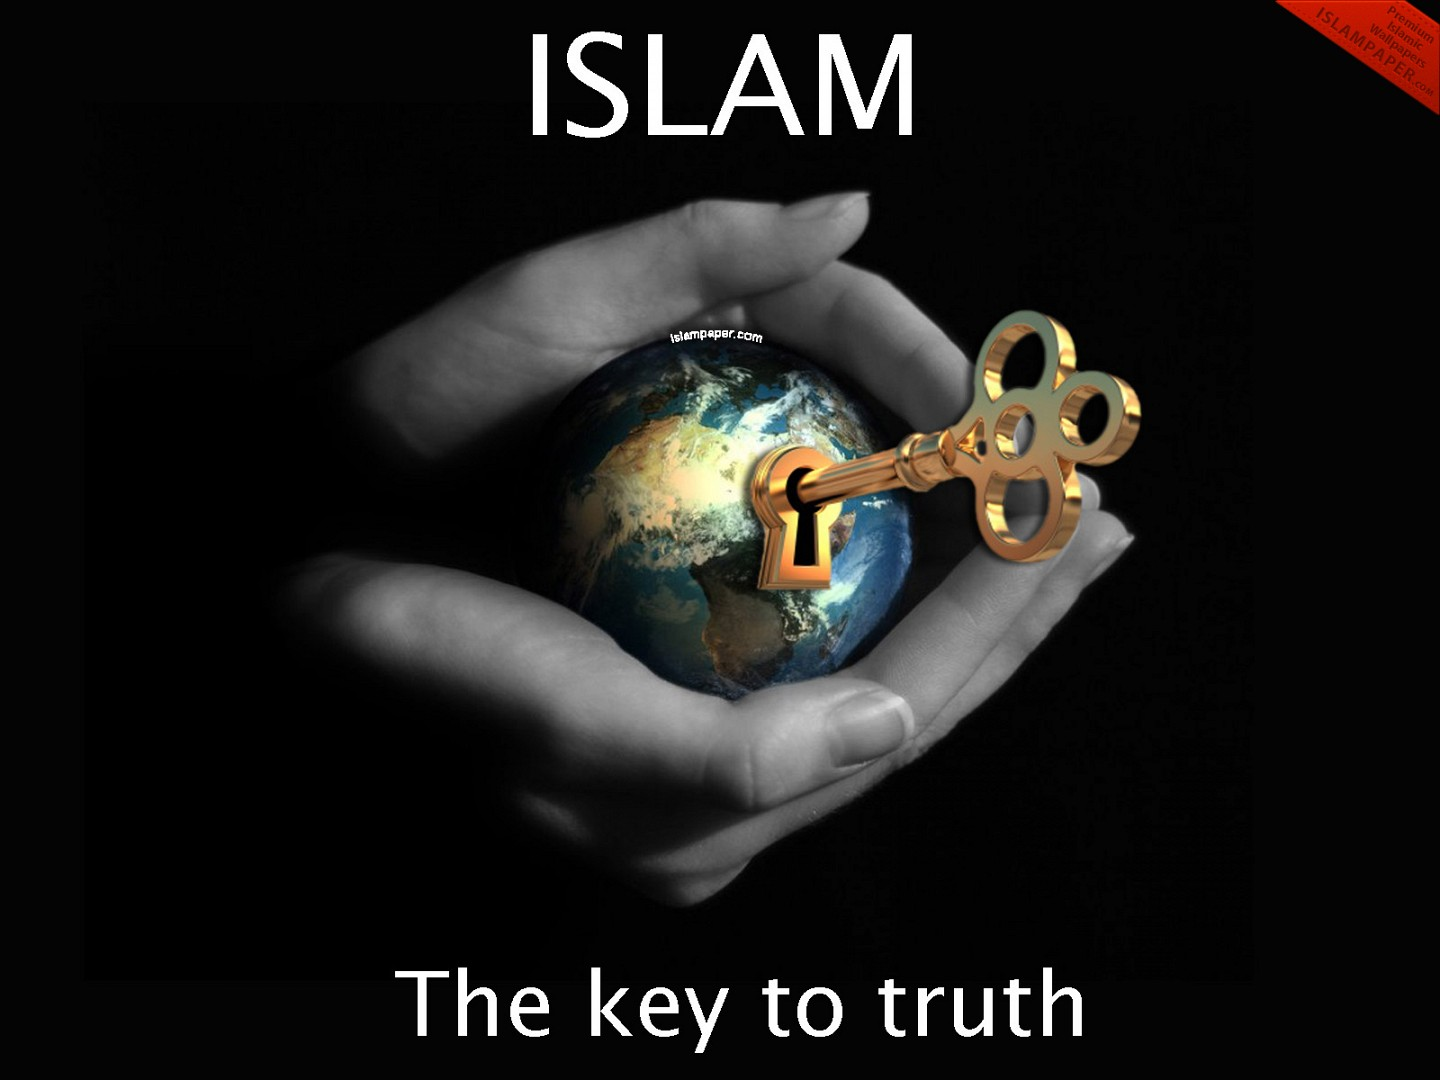 all about islam Browse for free 2,100+ quality islamic books, journals, articles and multimedia in multiple languages learn about islam and the muslim peoples understand sunni & shia.